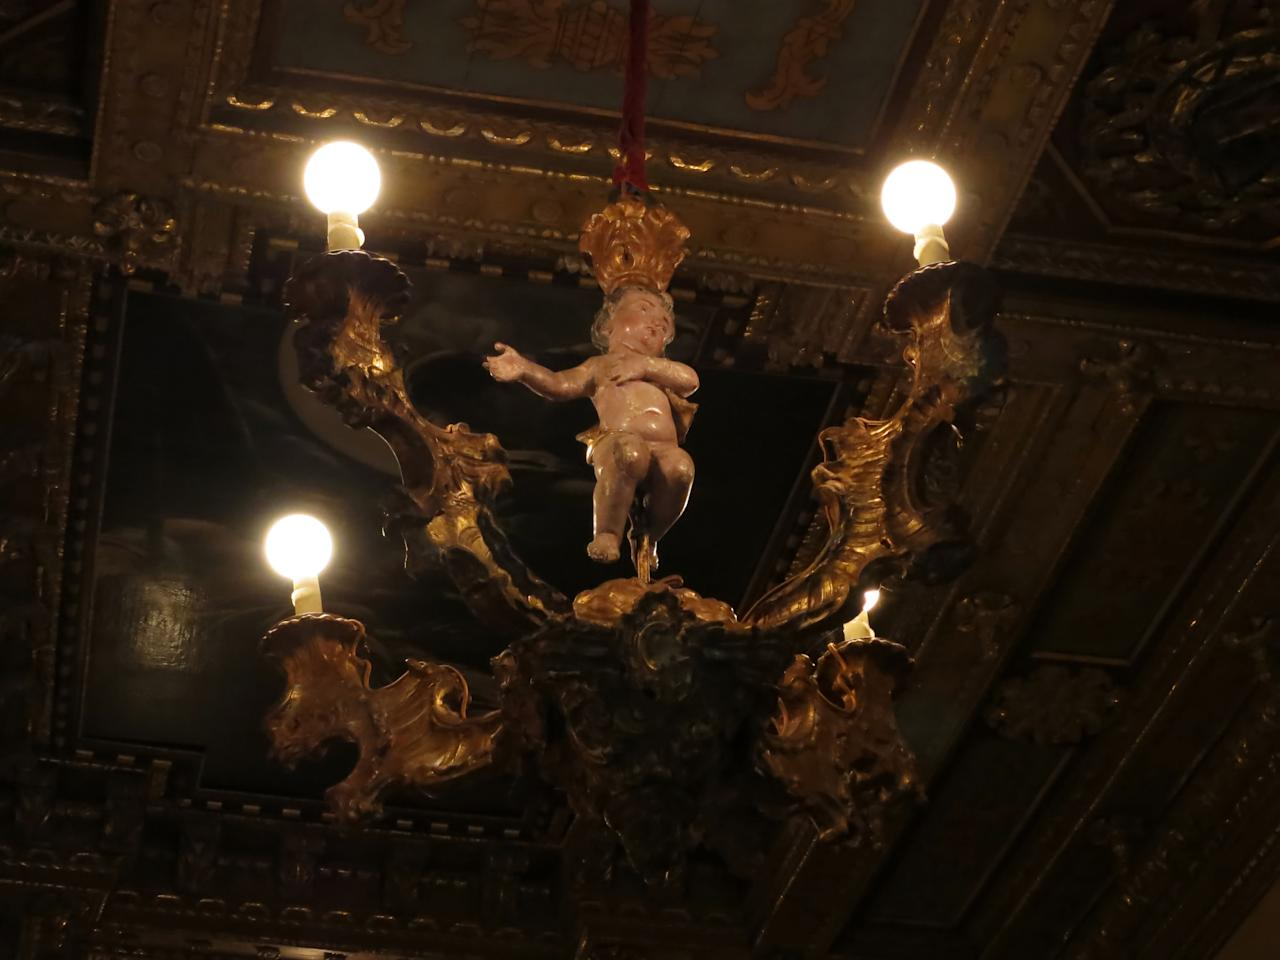 This Aug. 30, 2013 photo shows a lighting fixture hanging in The Hearst Castle, the 165-room estate of newspaper publisher William Randolph Hearst, in San Simeon, Calif. (AP Photo/Jim MacMillan)